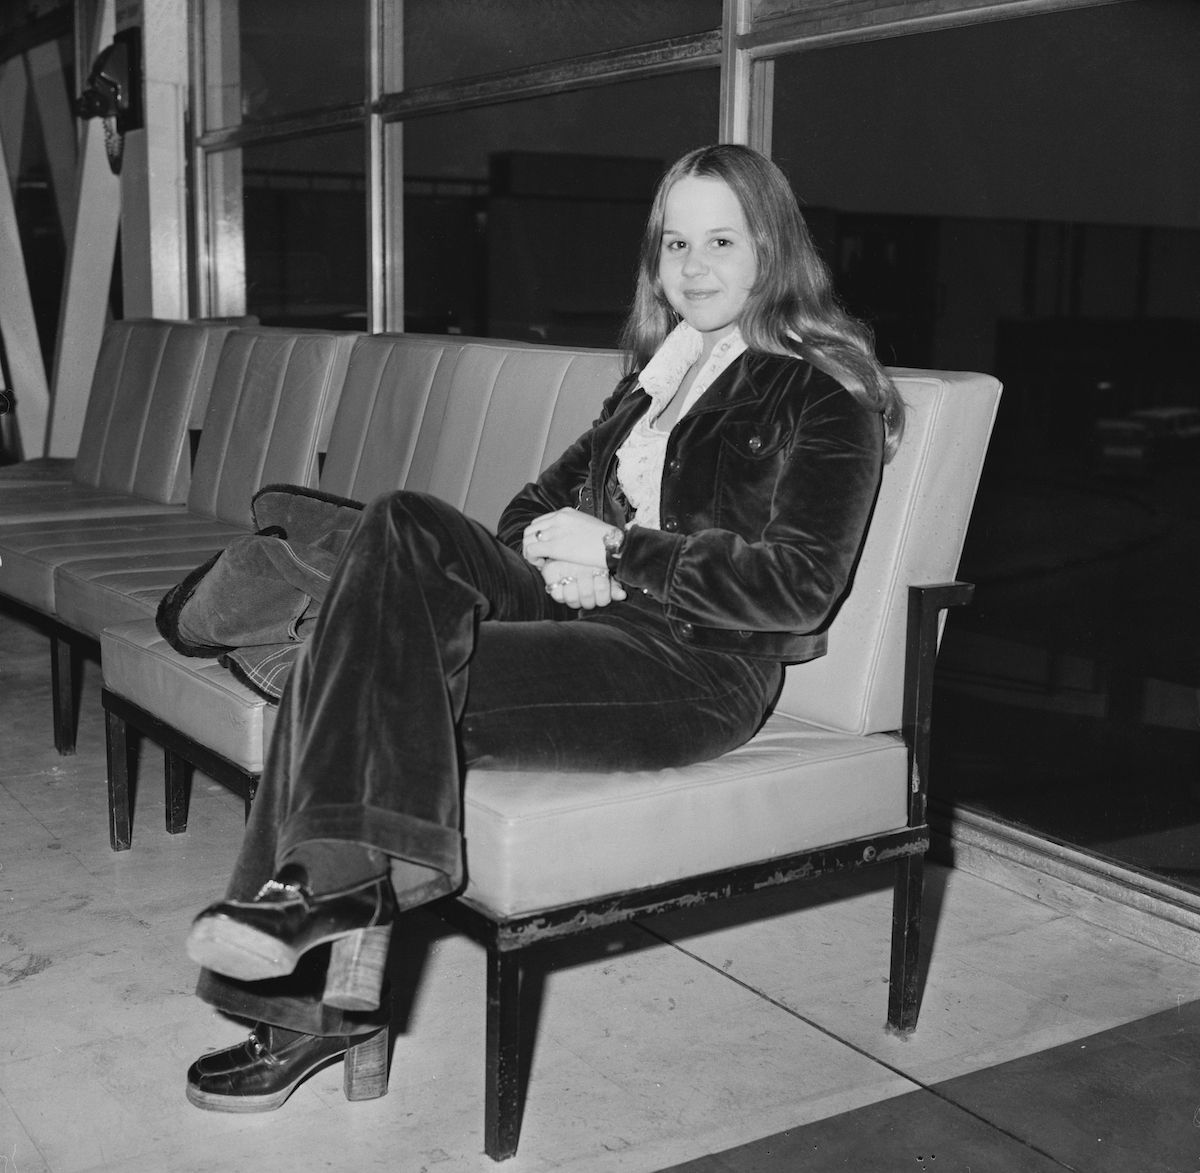 Linda Blair smiling, seated, in a black and white photo from 1974